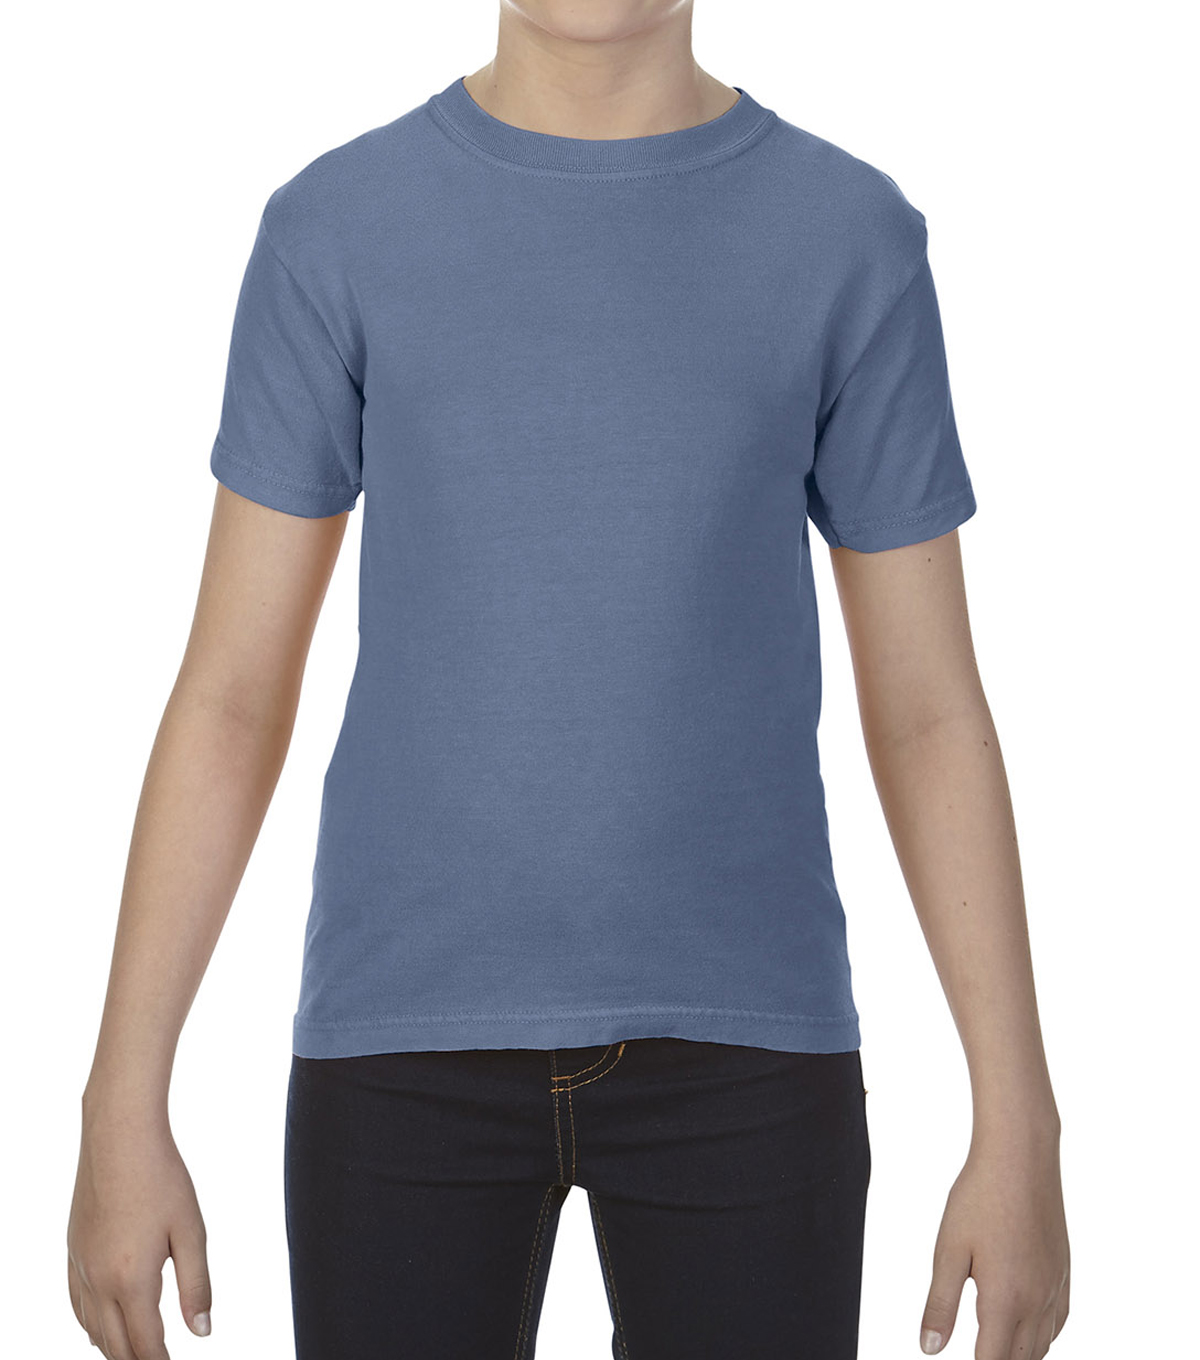 Gildan Comfort Colors 9018 Medium Youth T-Shirt, Blue Jean